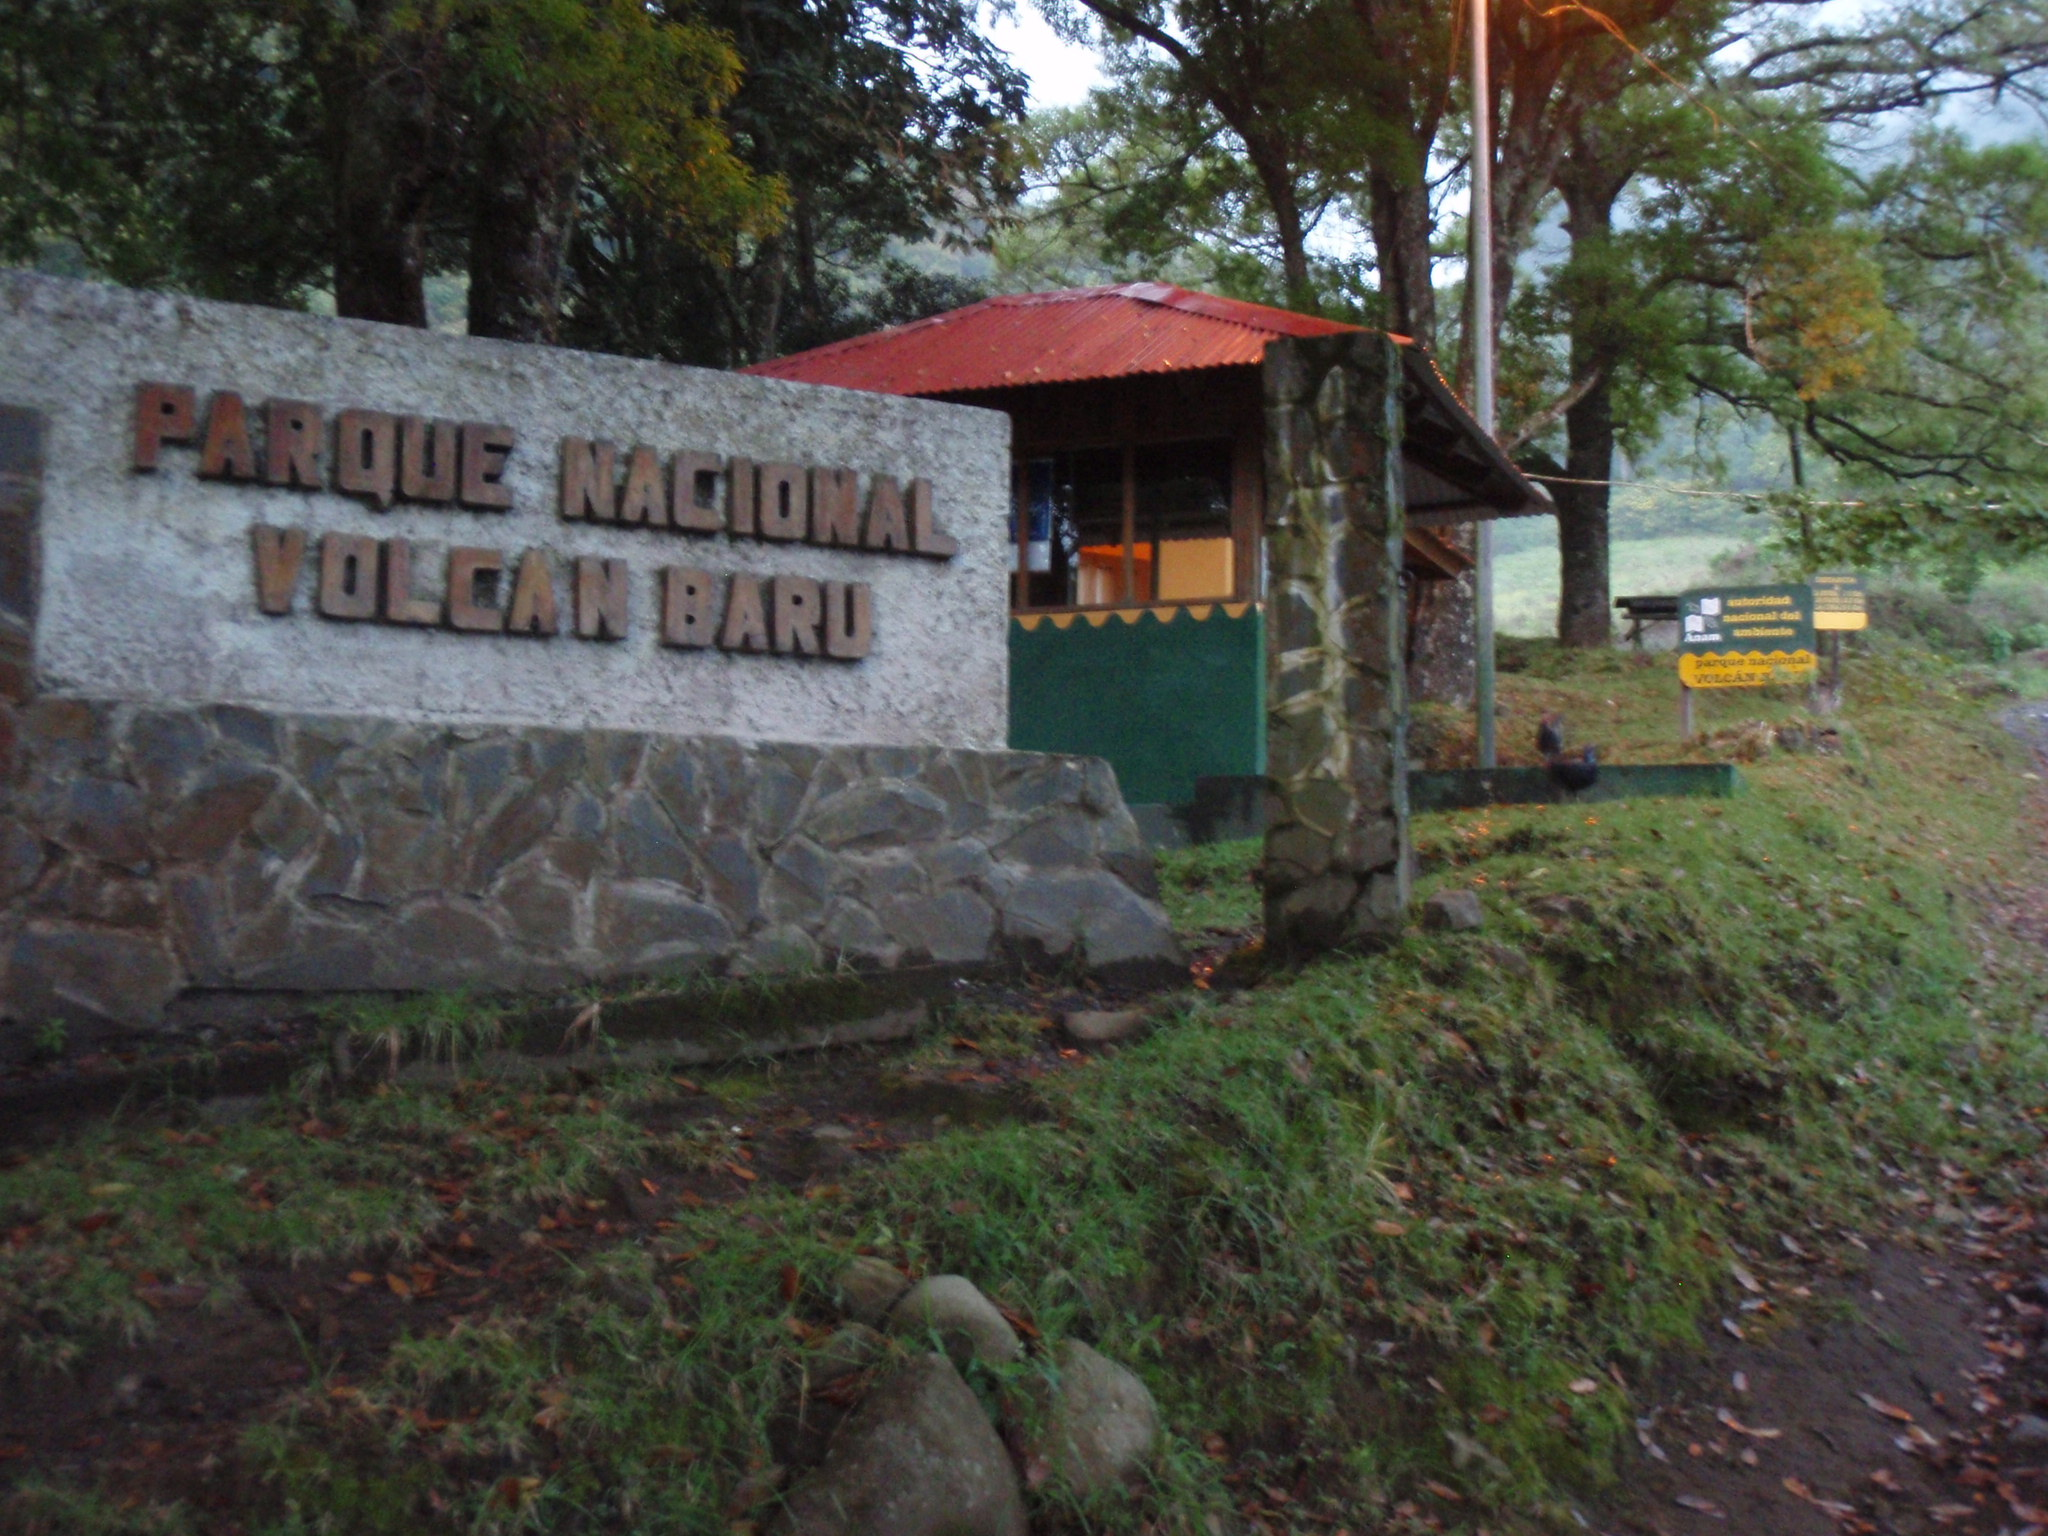 Baru National Park entrance